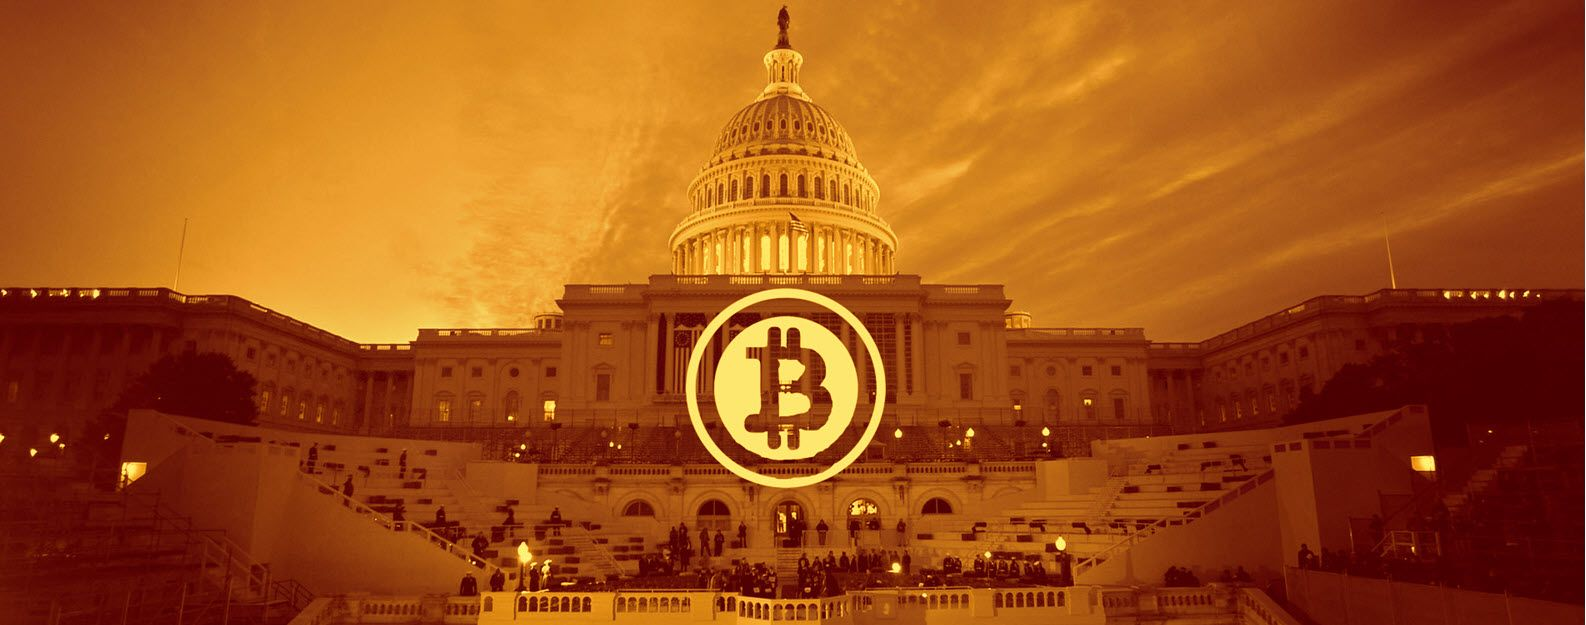 /capitol-building-rioters-under-scanner-for-bitcoin-transactions-u63133ta feature image